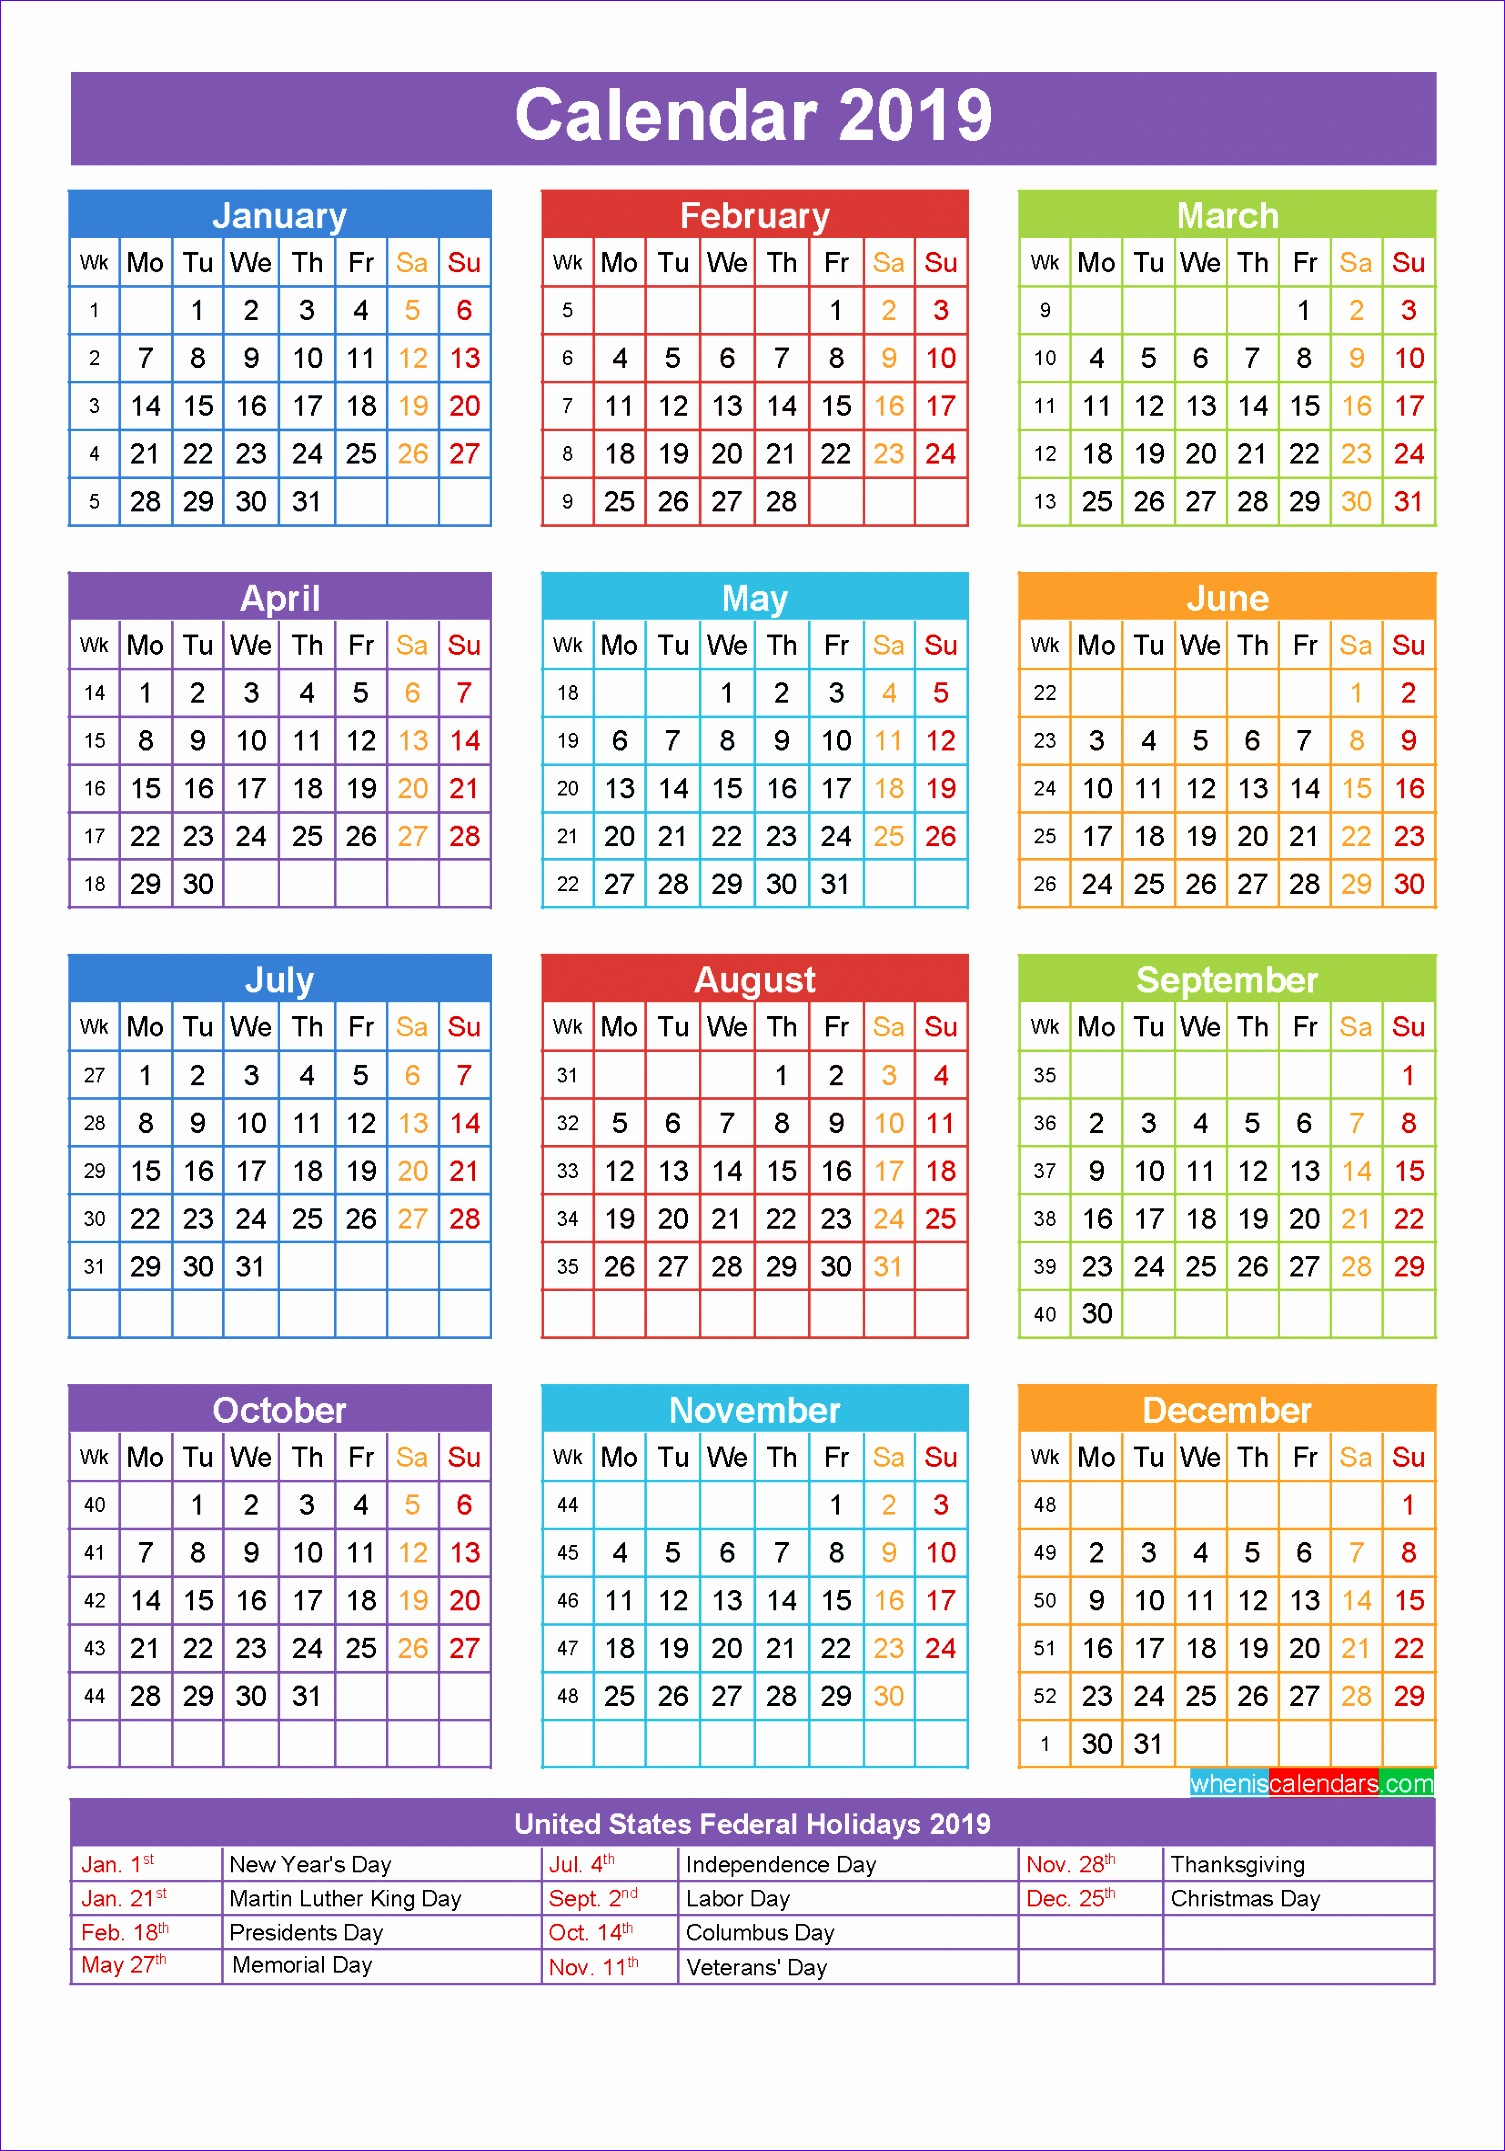 2019 calendar with holidays 1339 15052151